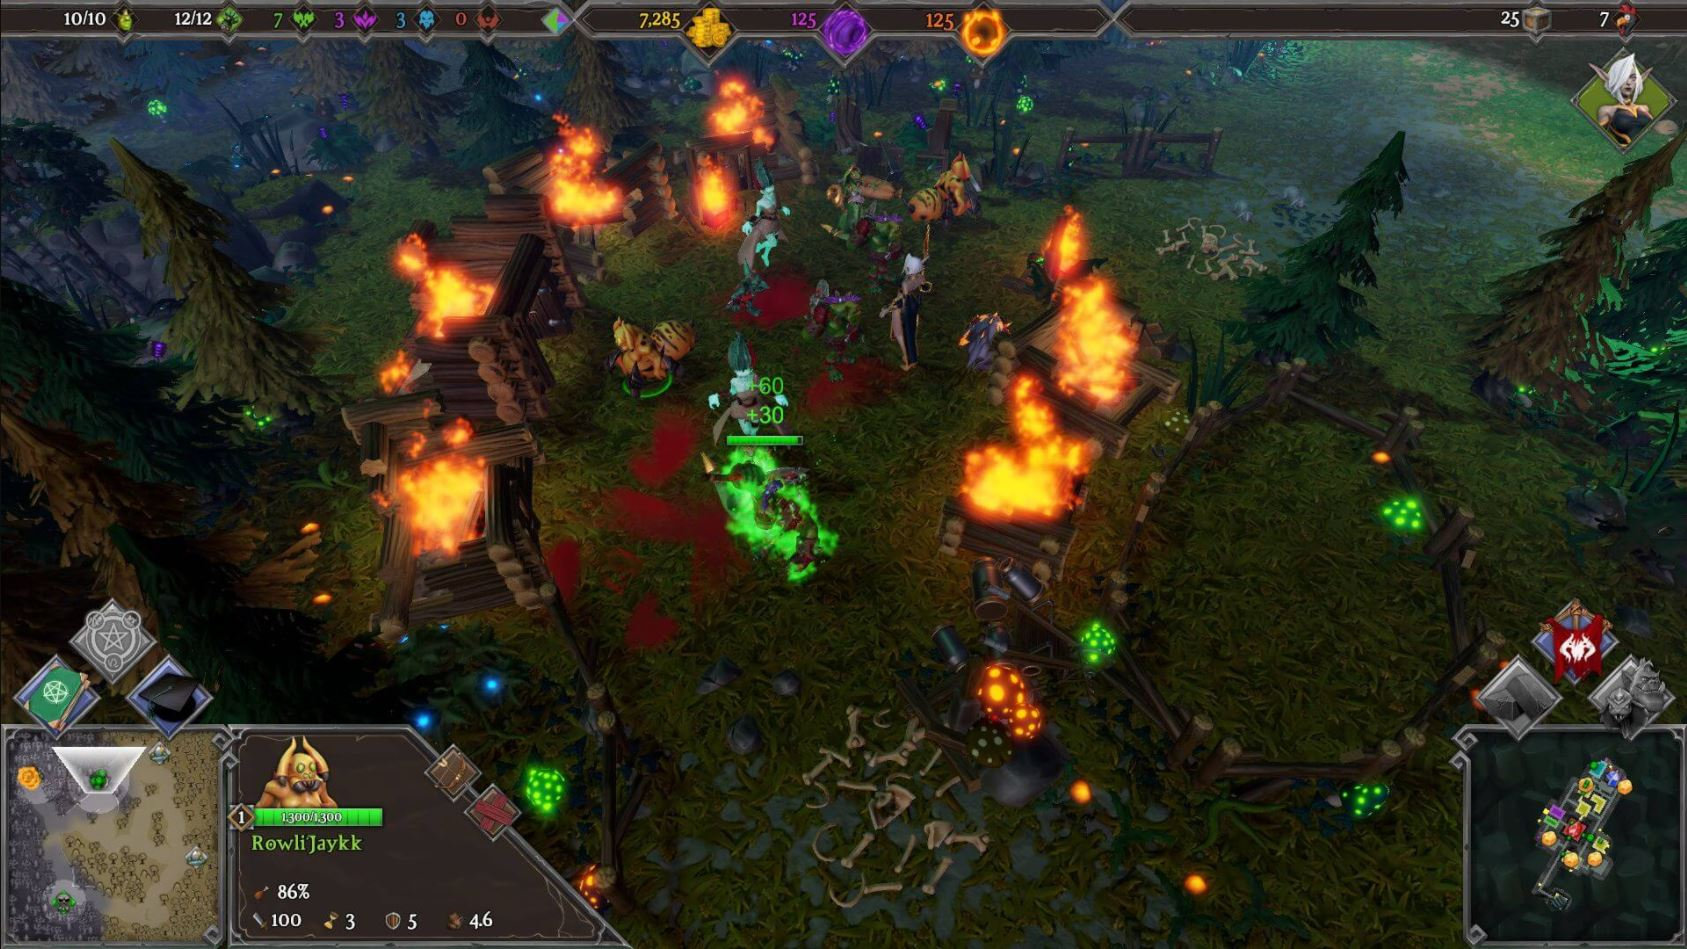 Dungeons 3 sur Steam promo dungeons 2 screen145